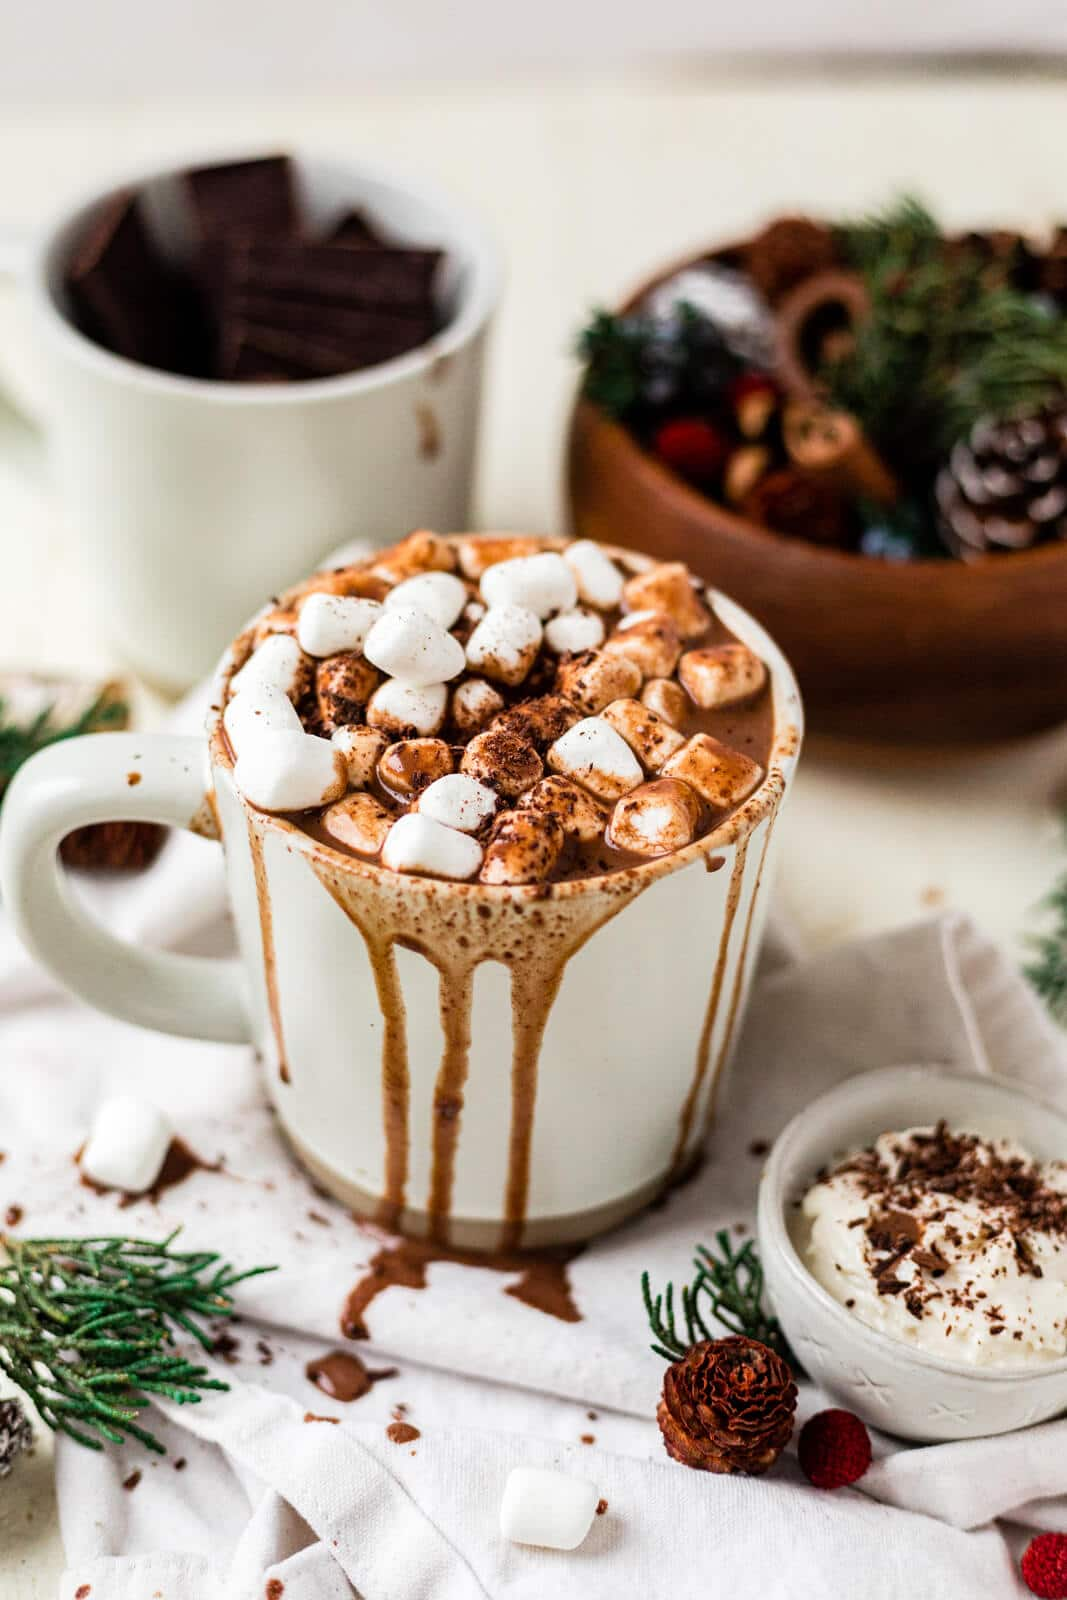 healthy hot chocolate in a white mug with mini marshmallows and hot chocolate dripping over the sides